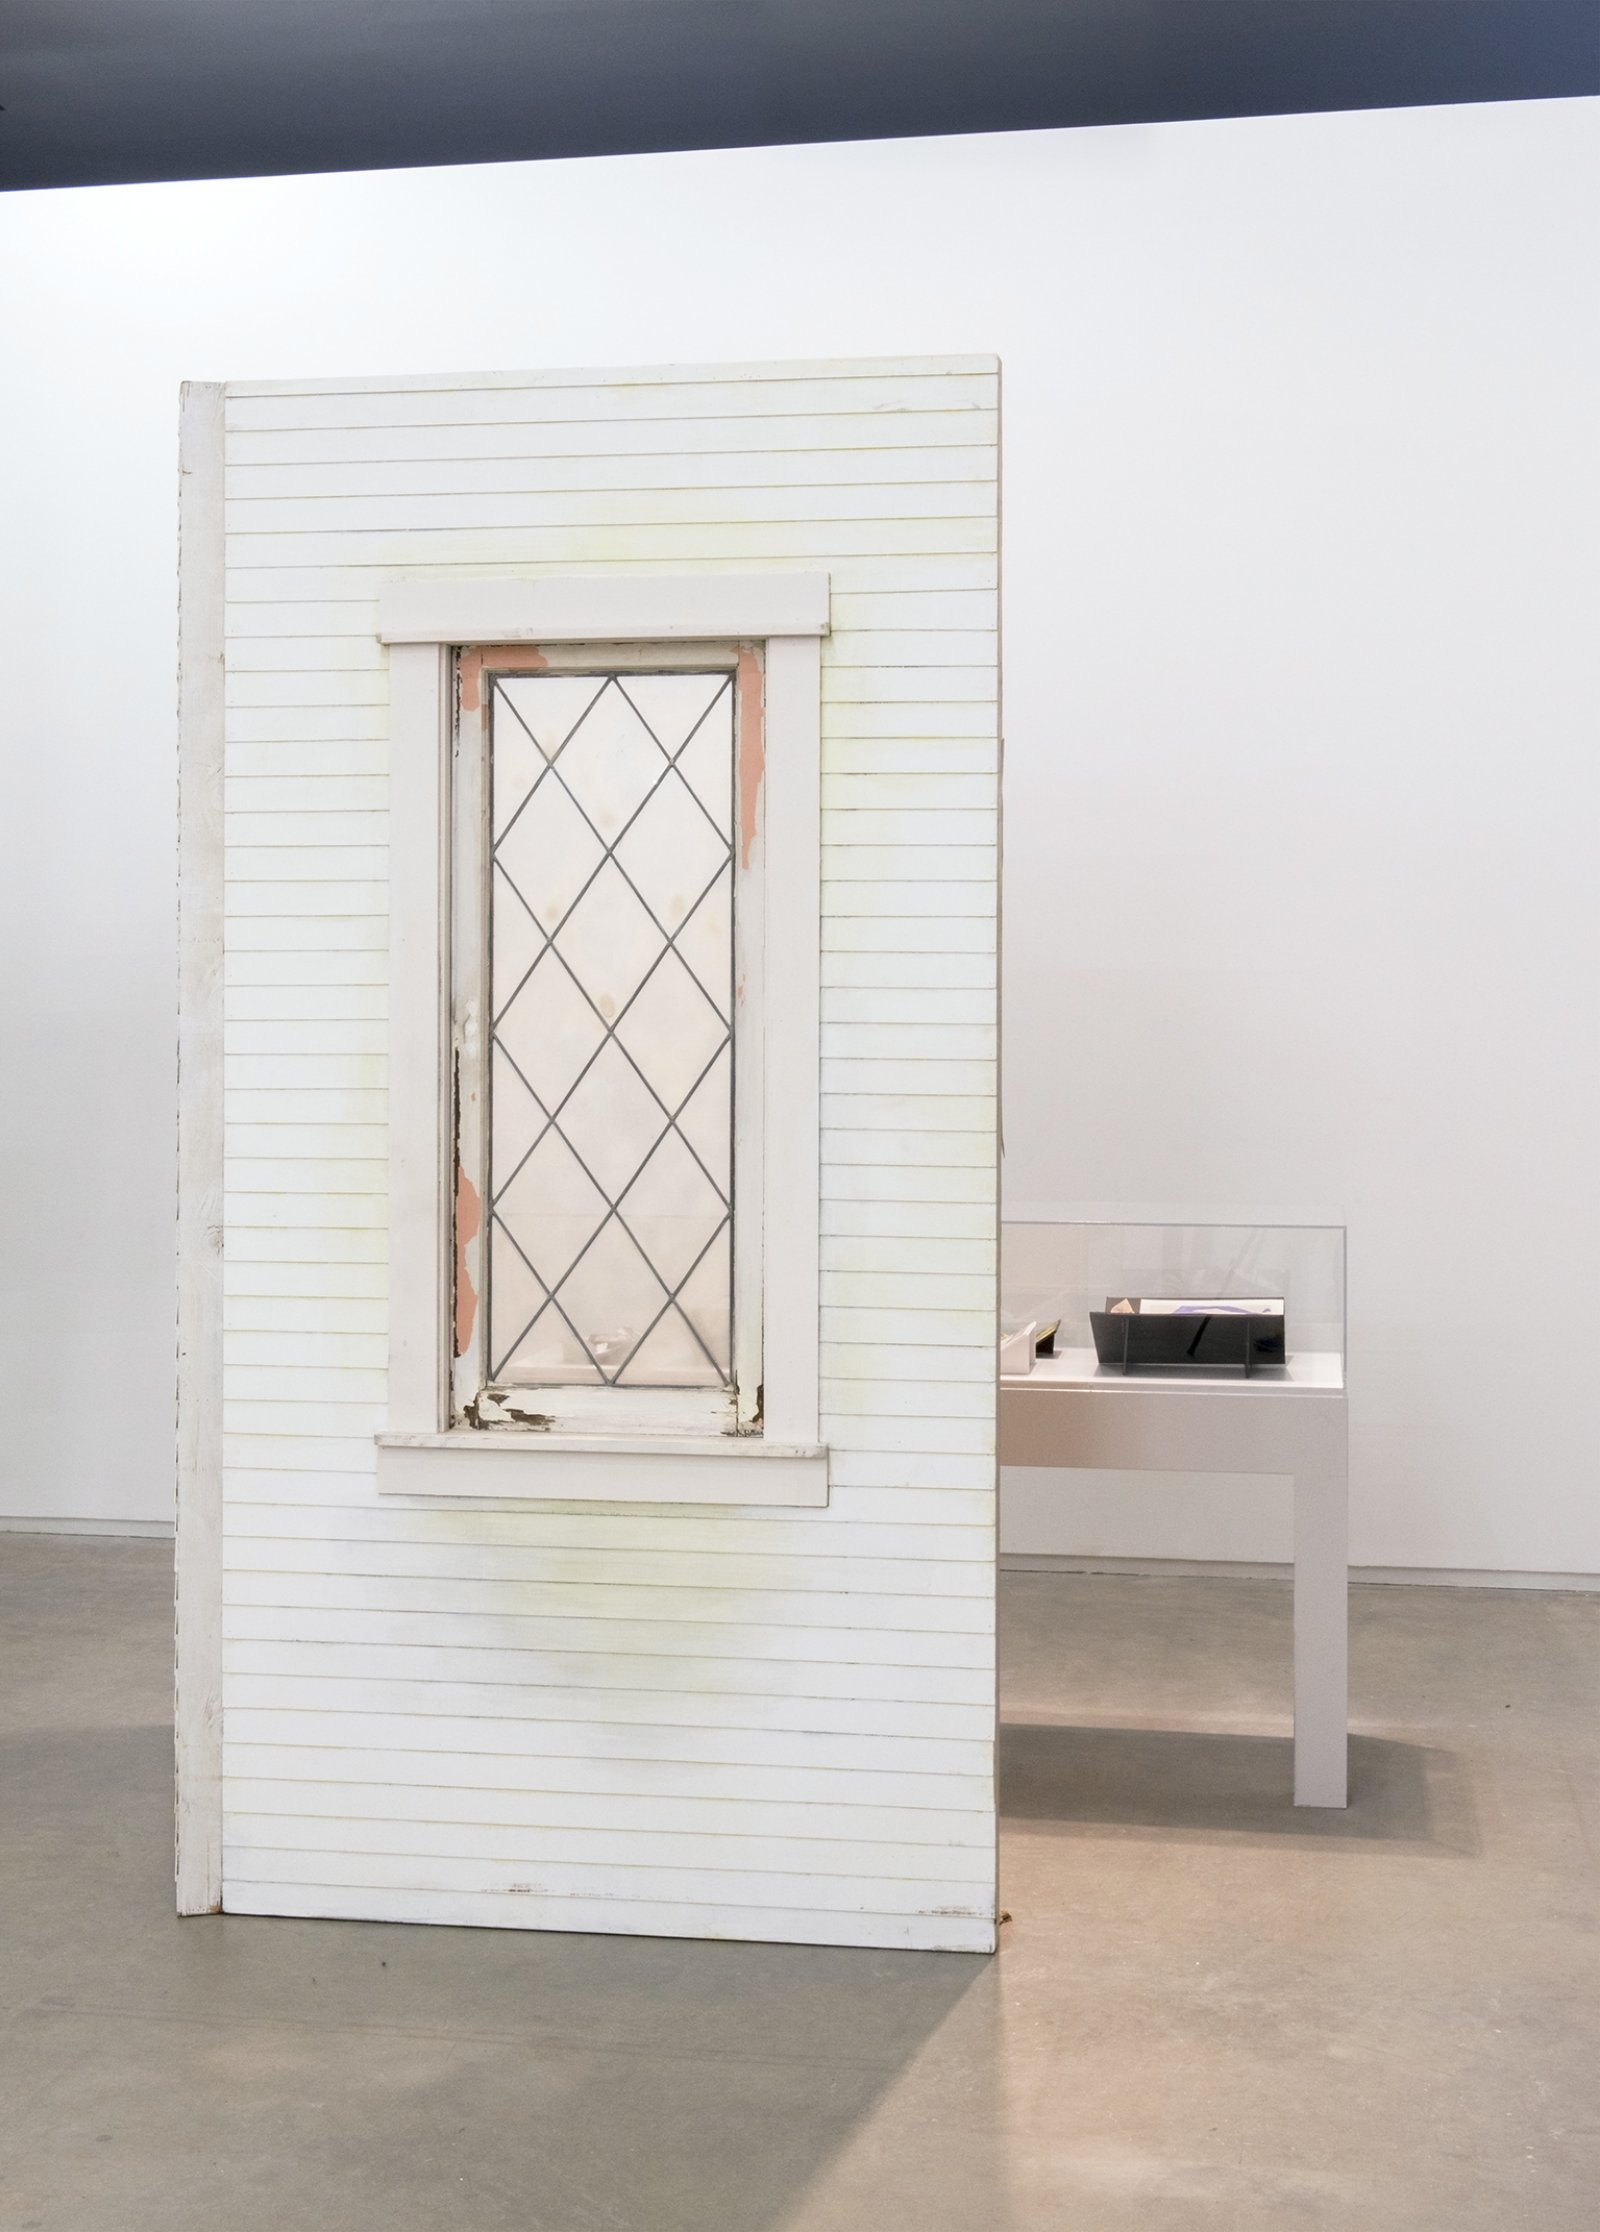 Geoffrey Farmer, Journals with Norman Bates (Fountain), 2014, vitrine with 8 cut-outs collaged on foamcore, 2 wooden wall façades, paint, window, sandbags, framed cut-outs and ink mounted on paper, dimensions variable